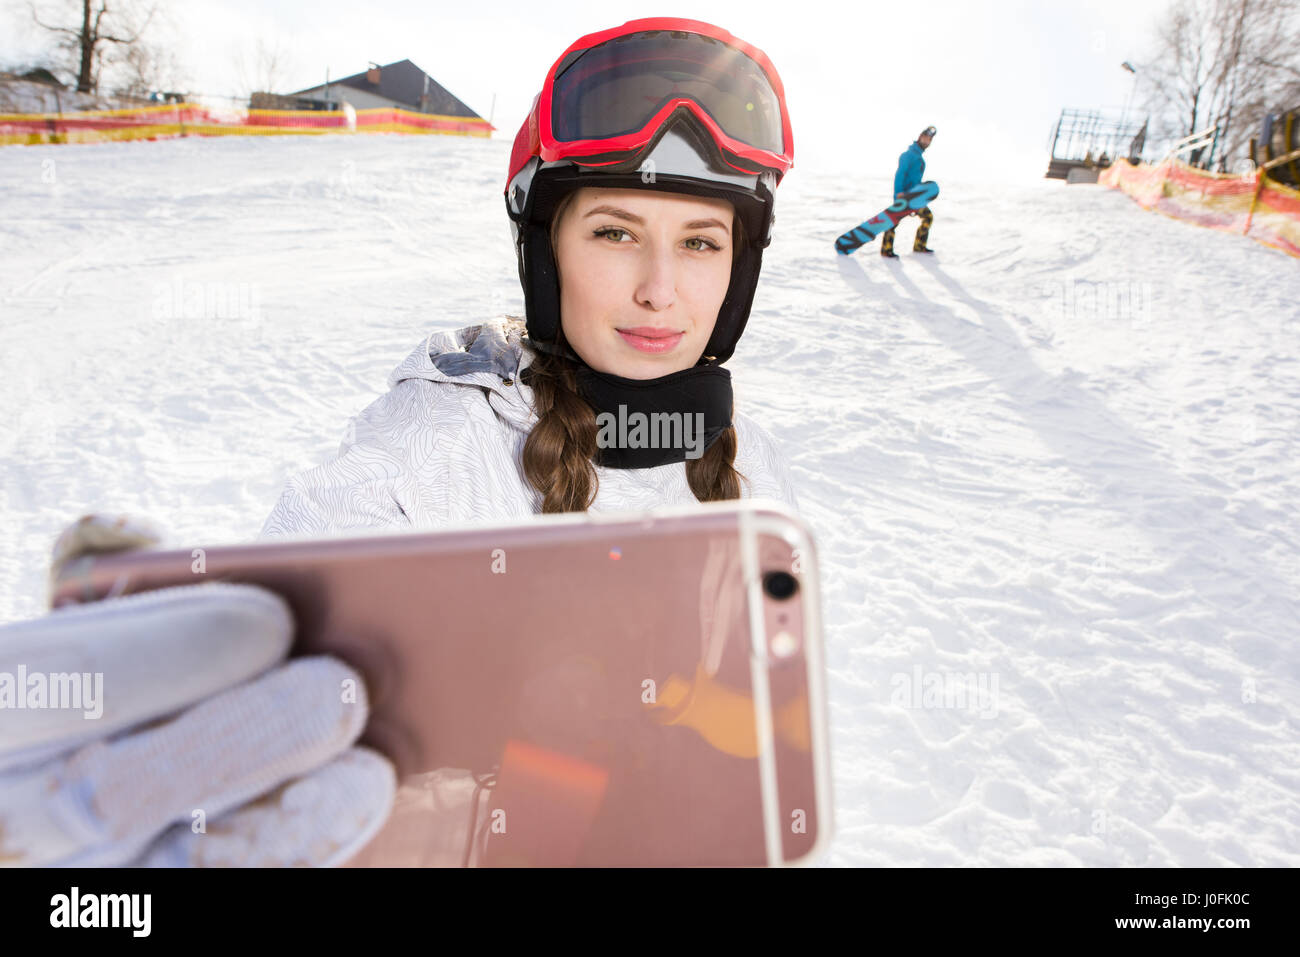 Beautiful young female snowboarder taking selfie with smartphone - Stock Image